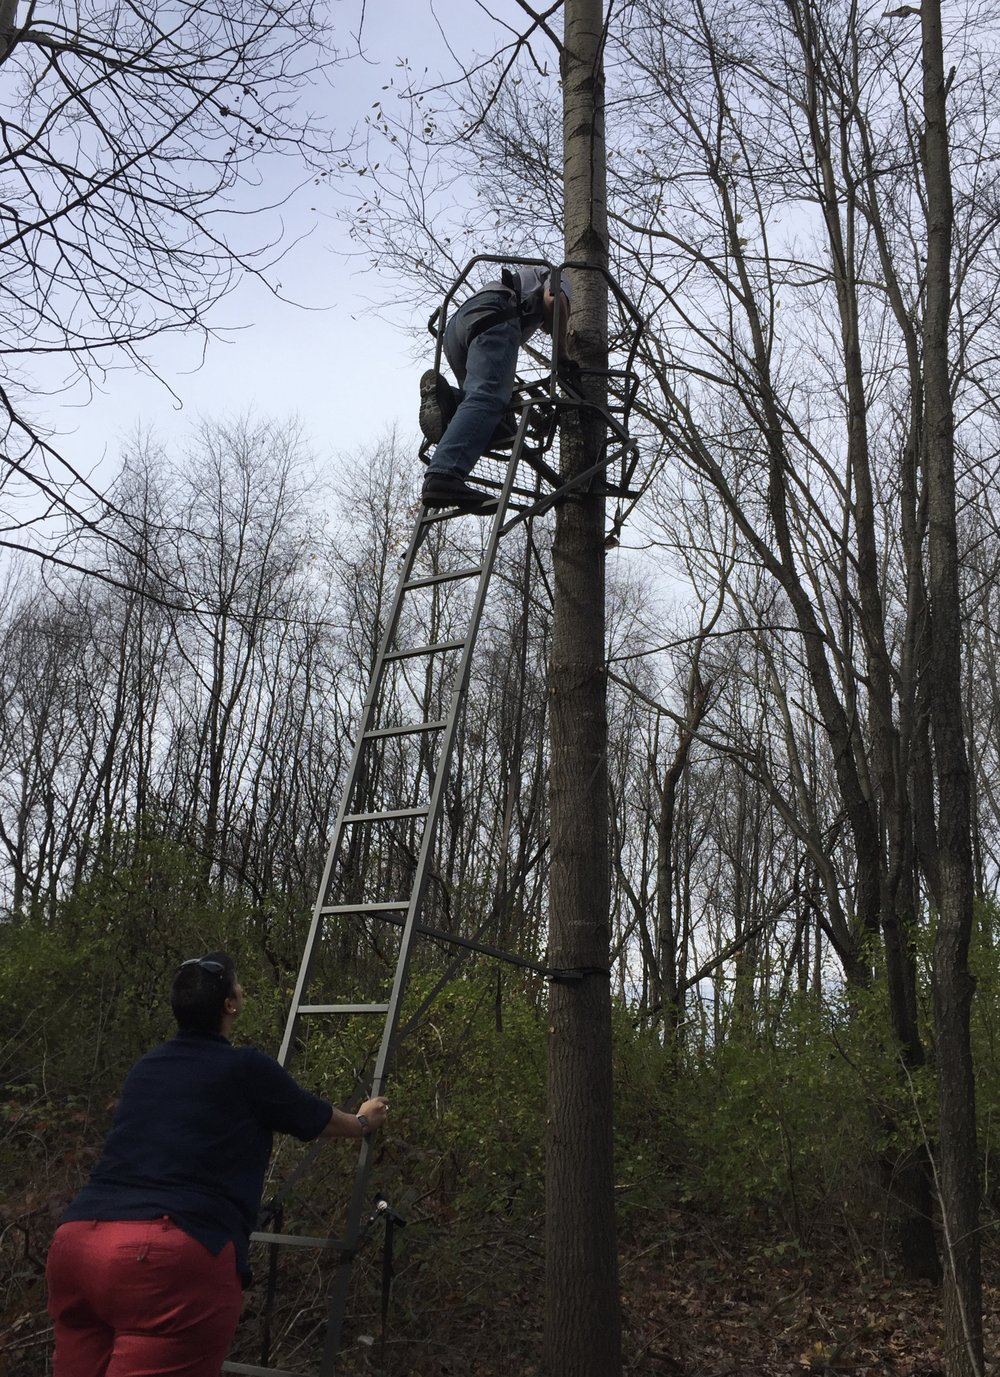 - Our first time installing a ladder stand. Perhaps wearing sandals and red pants in the woods was not my best fashion move.